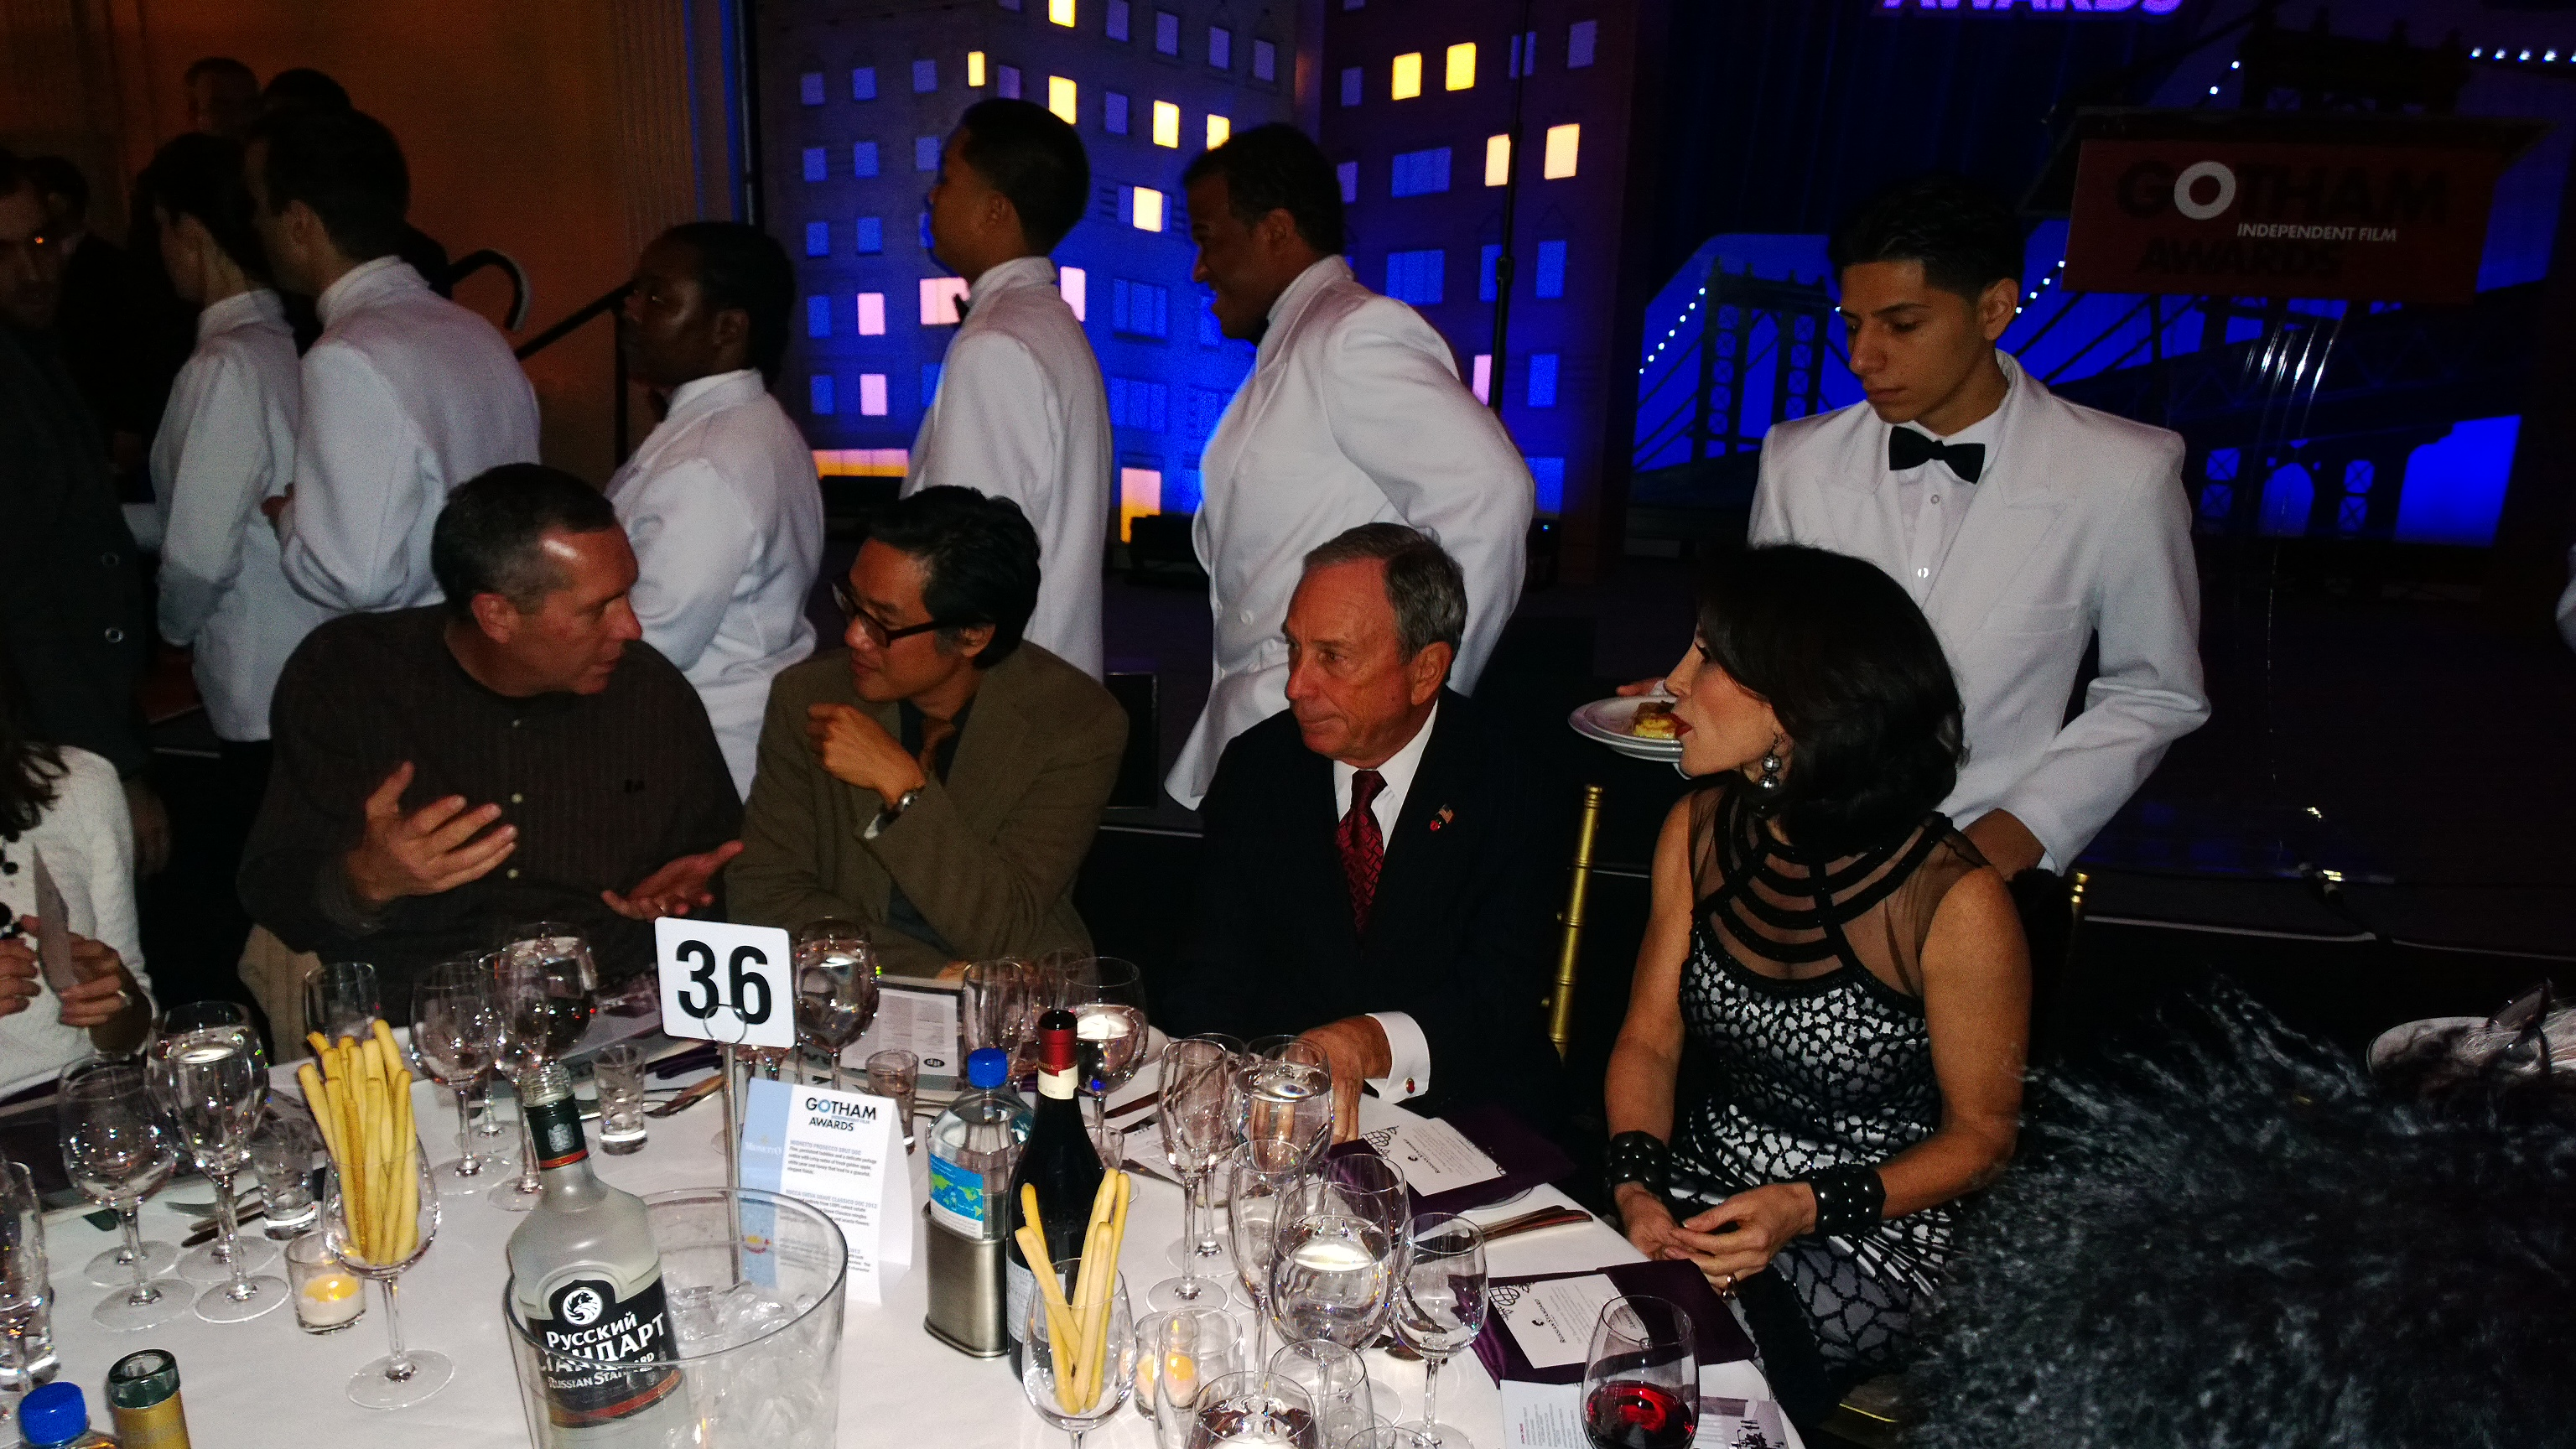 Mayor Bloomberg at the 2013 Gotham Awards